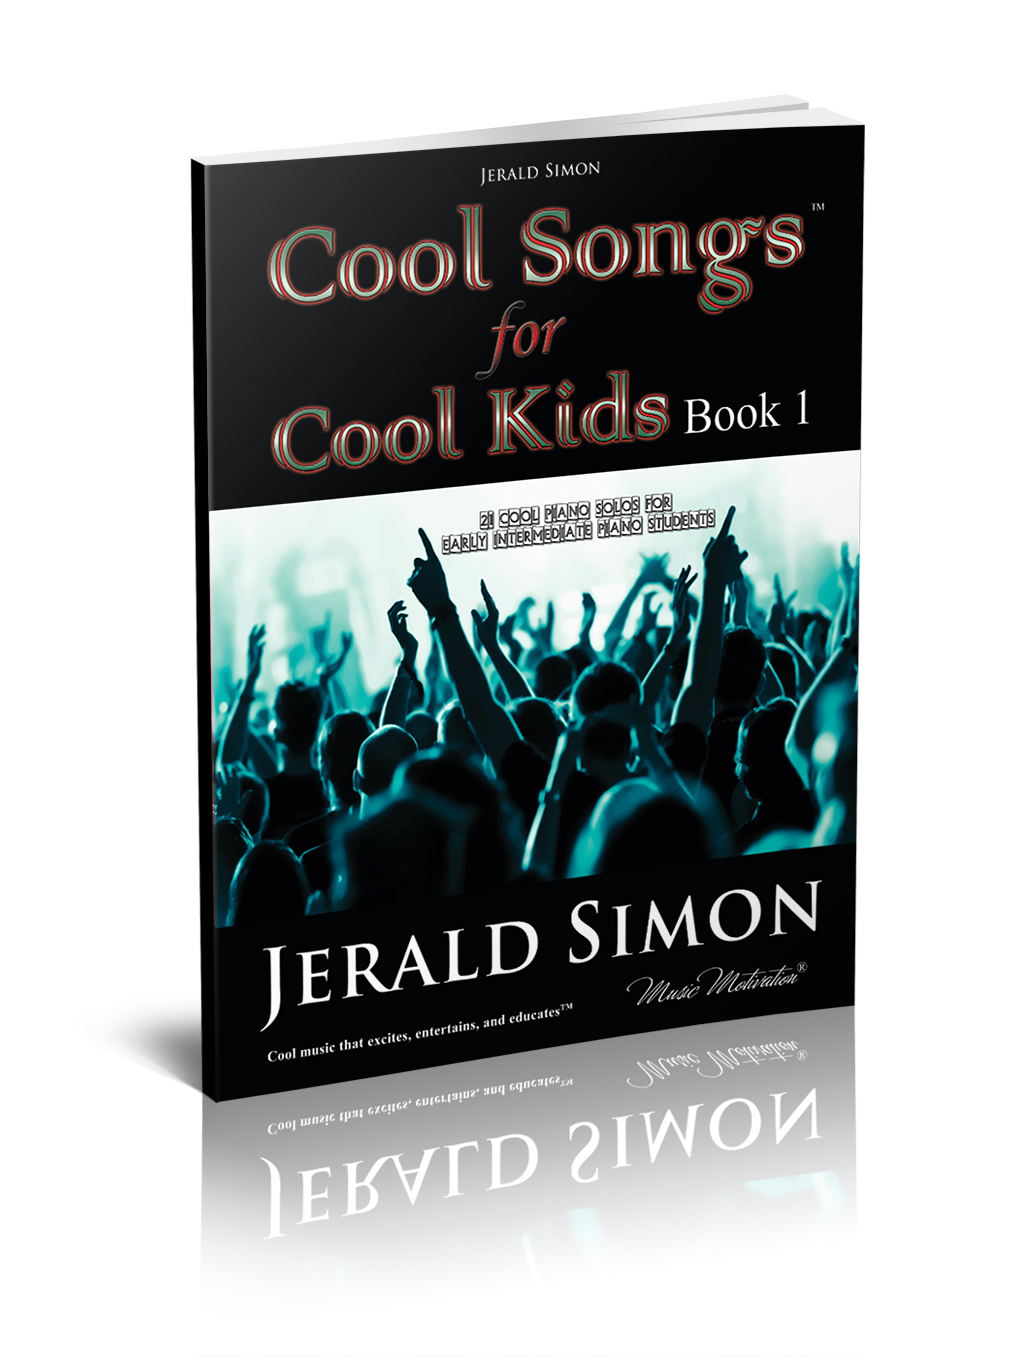 Cool Songs for Cool Kids (book 1) - PDF download (single use)